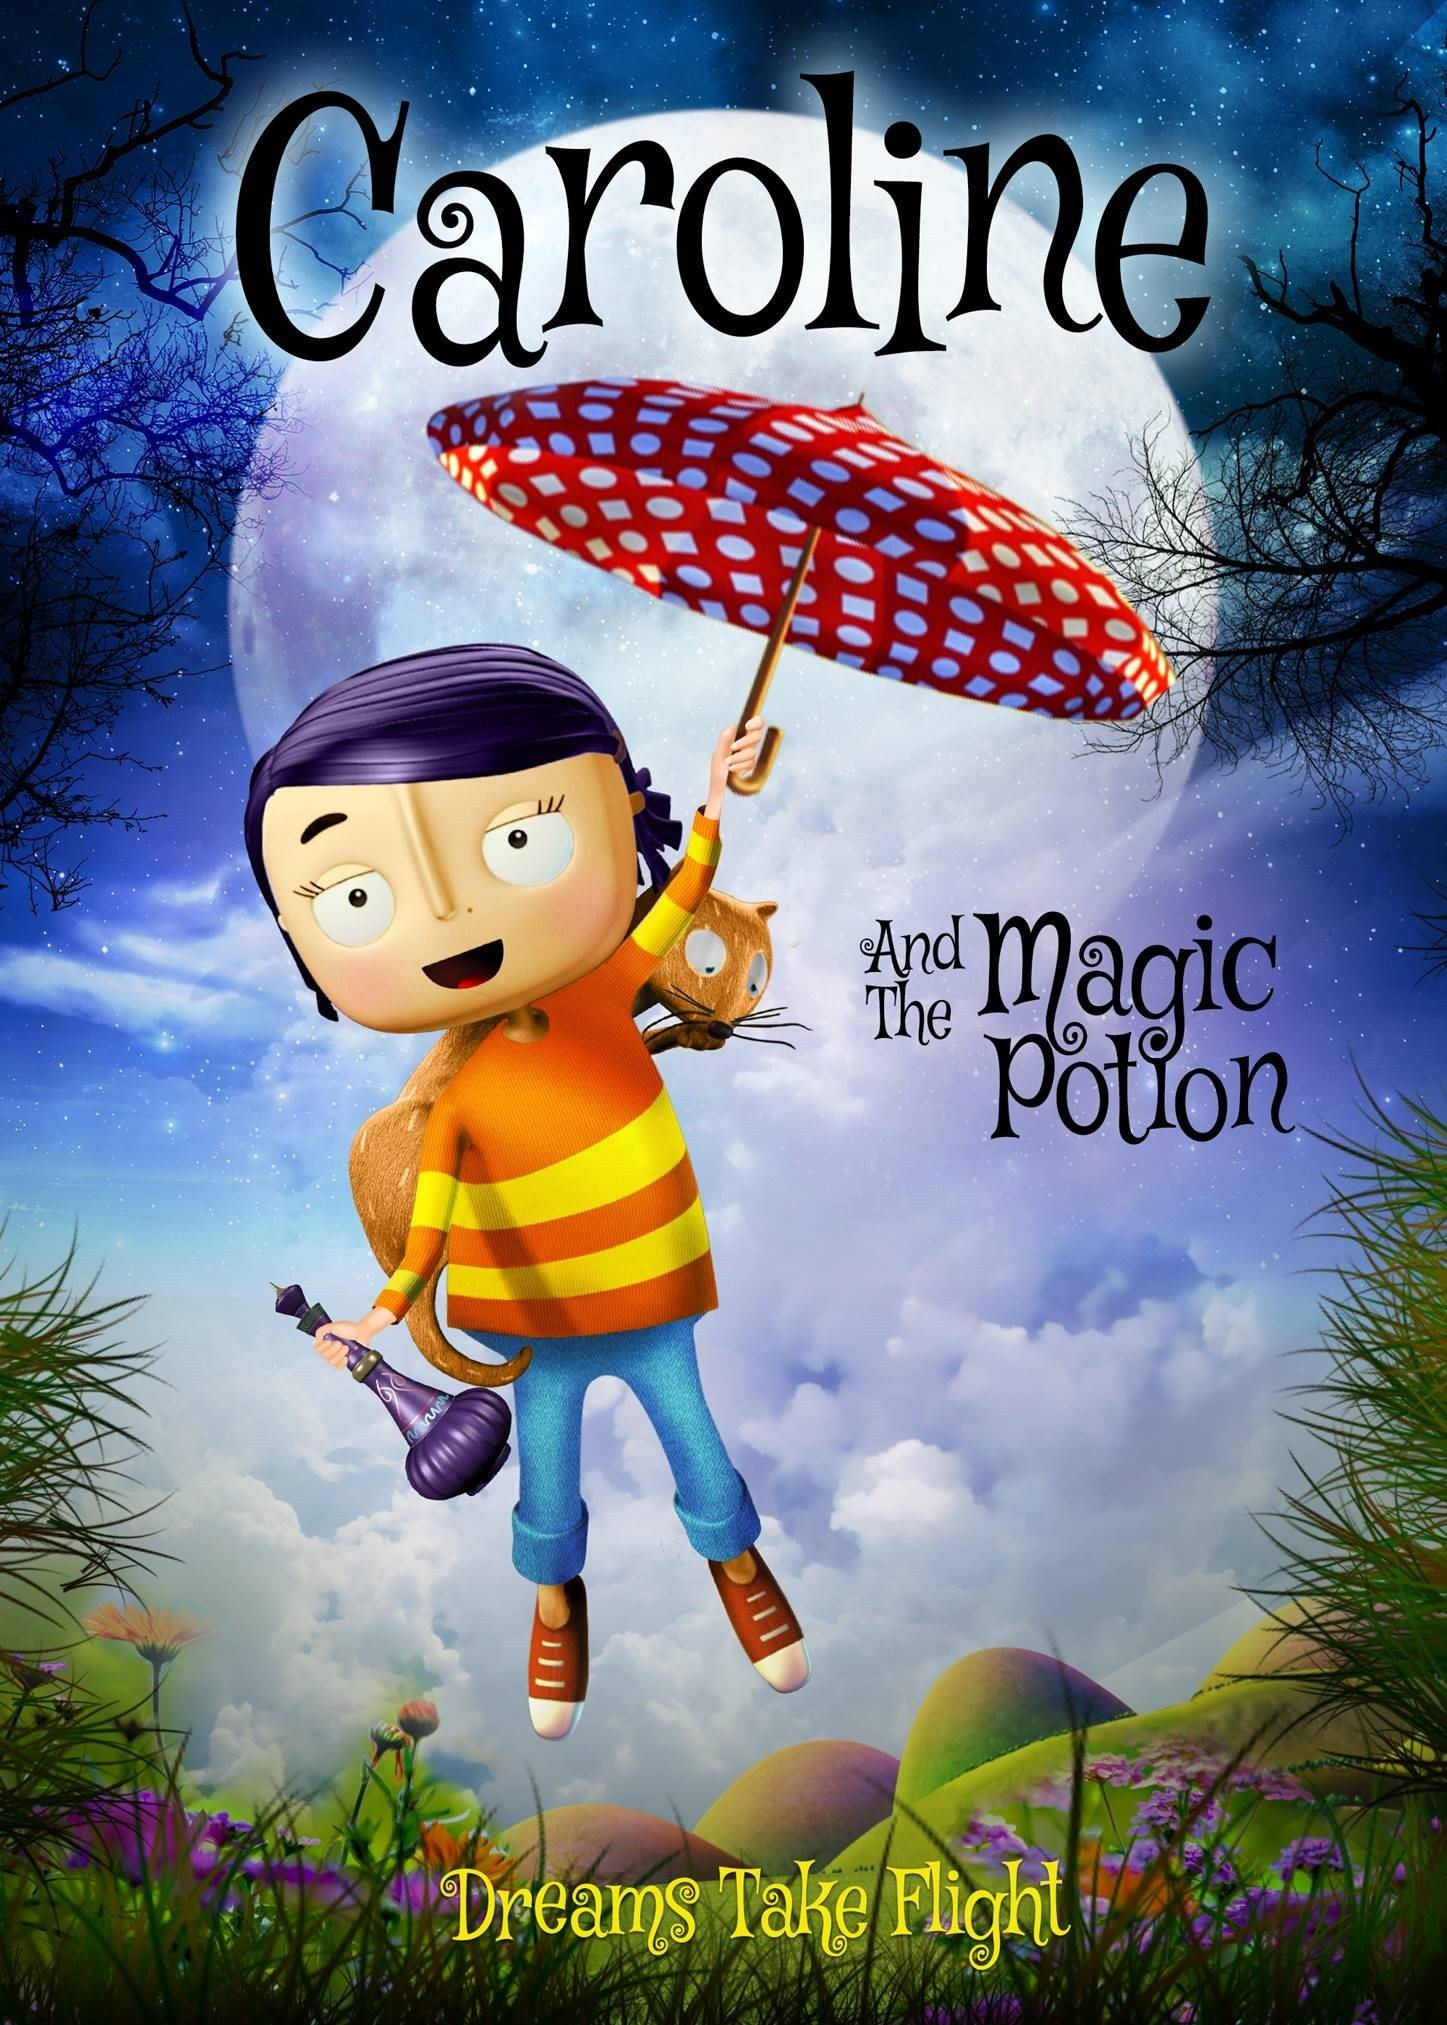 Caroline And The Magic Potion 2015 Imdb